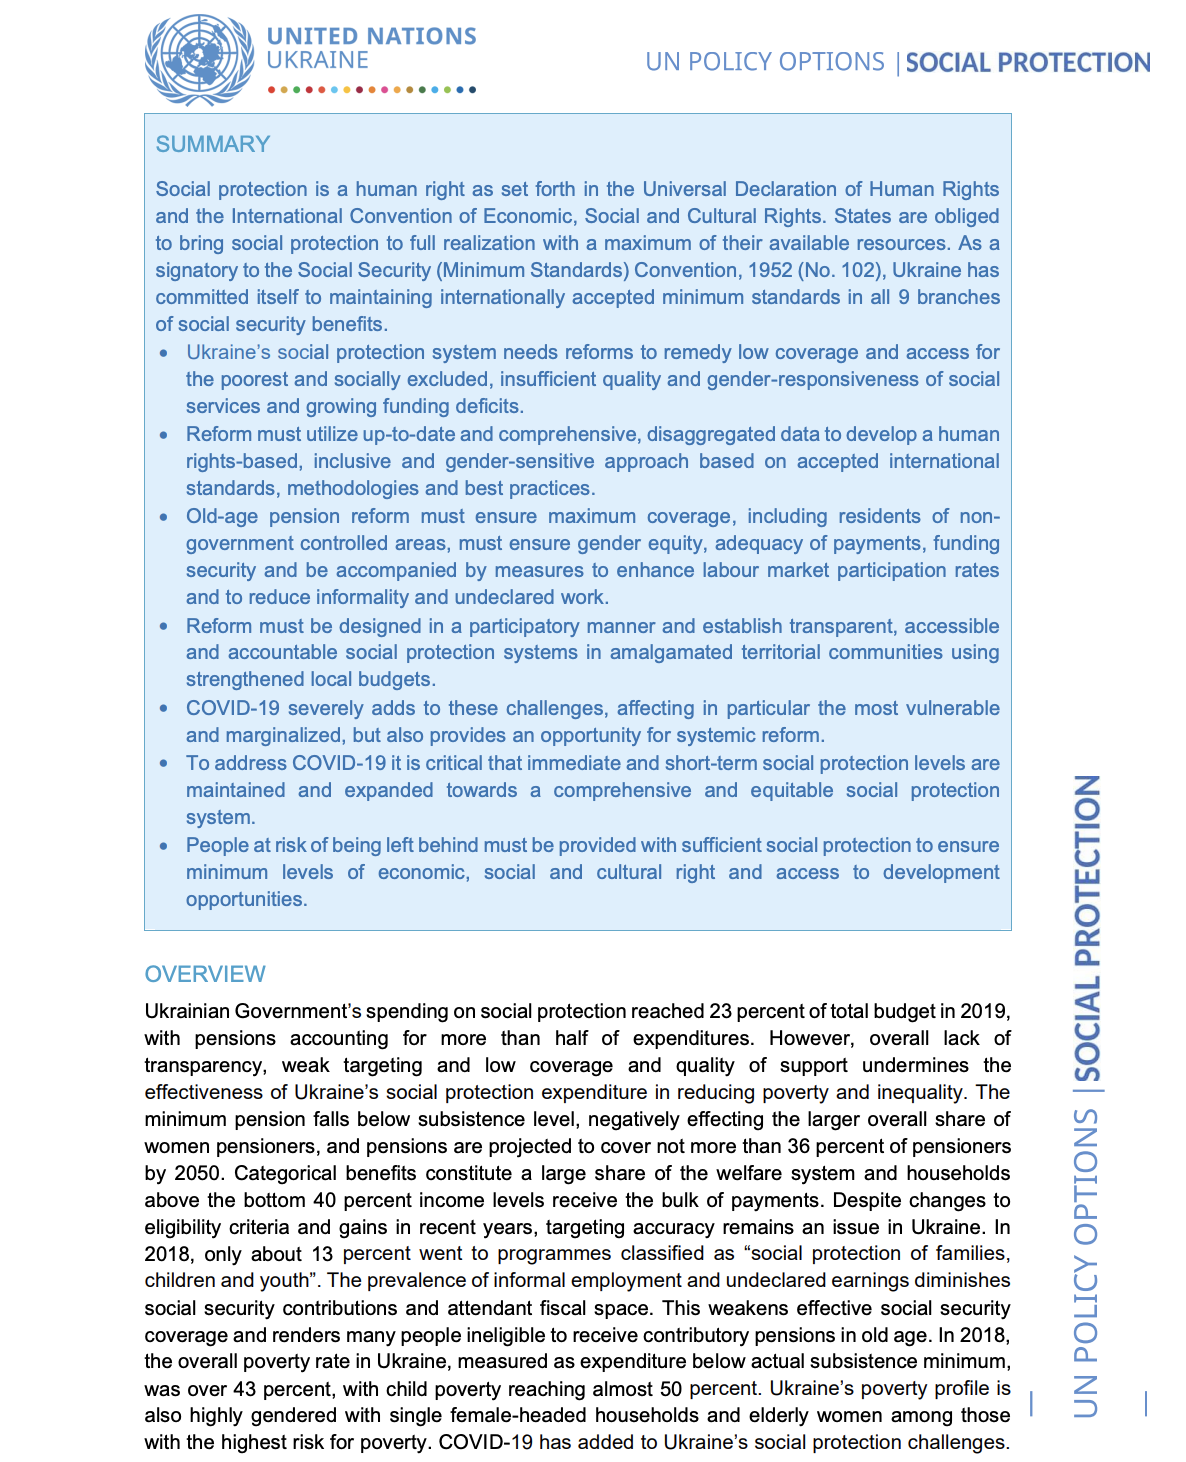 UN Policy Paper on Social Protection in Ukraine